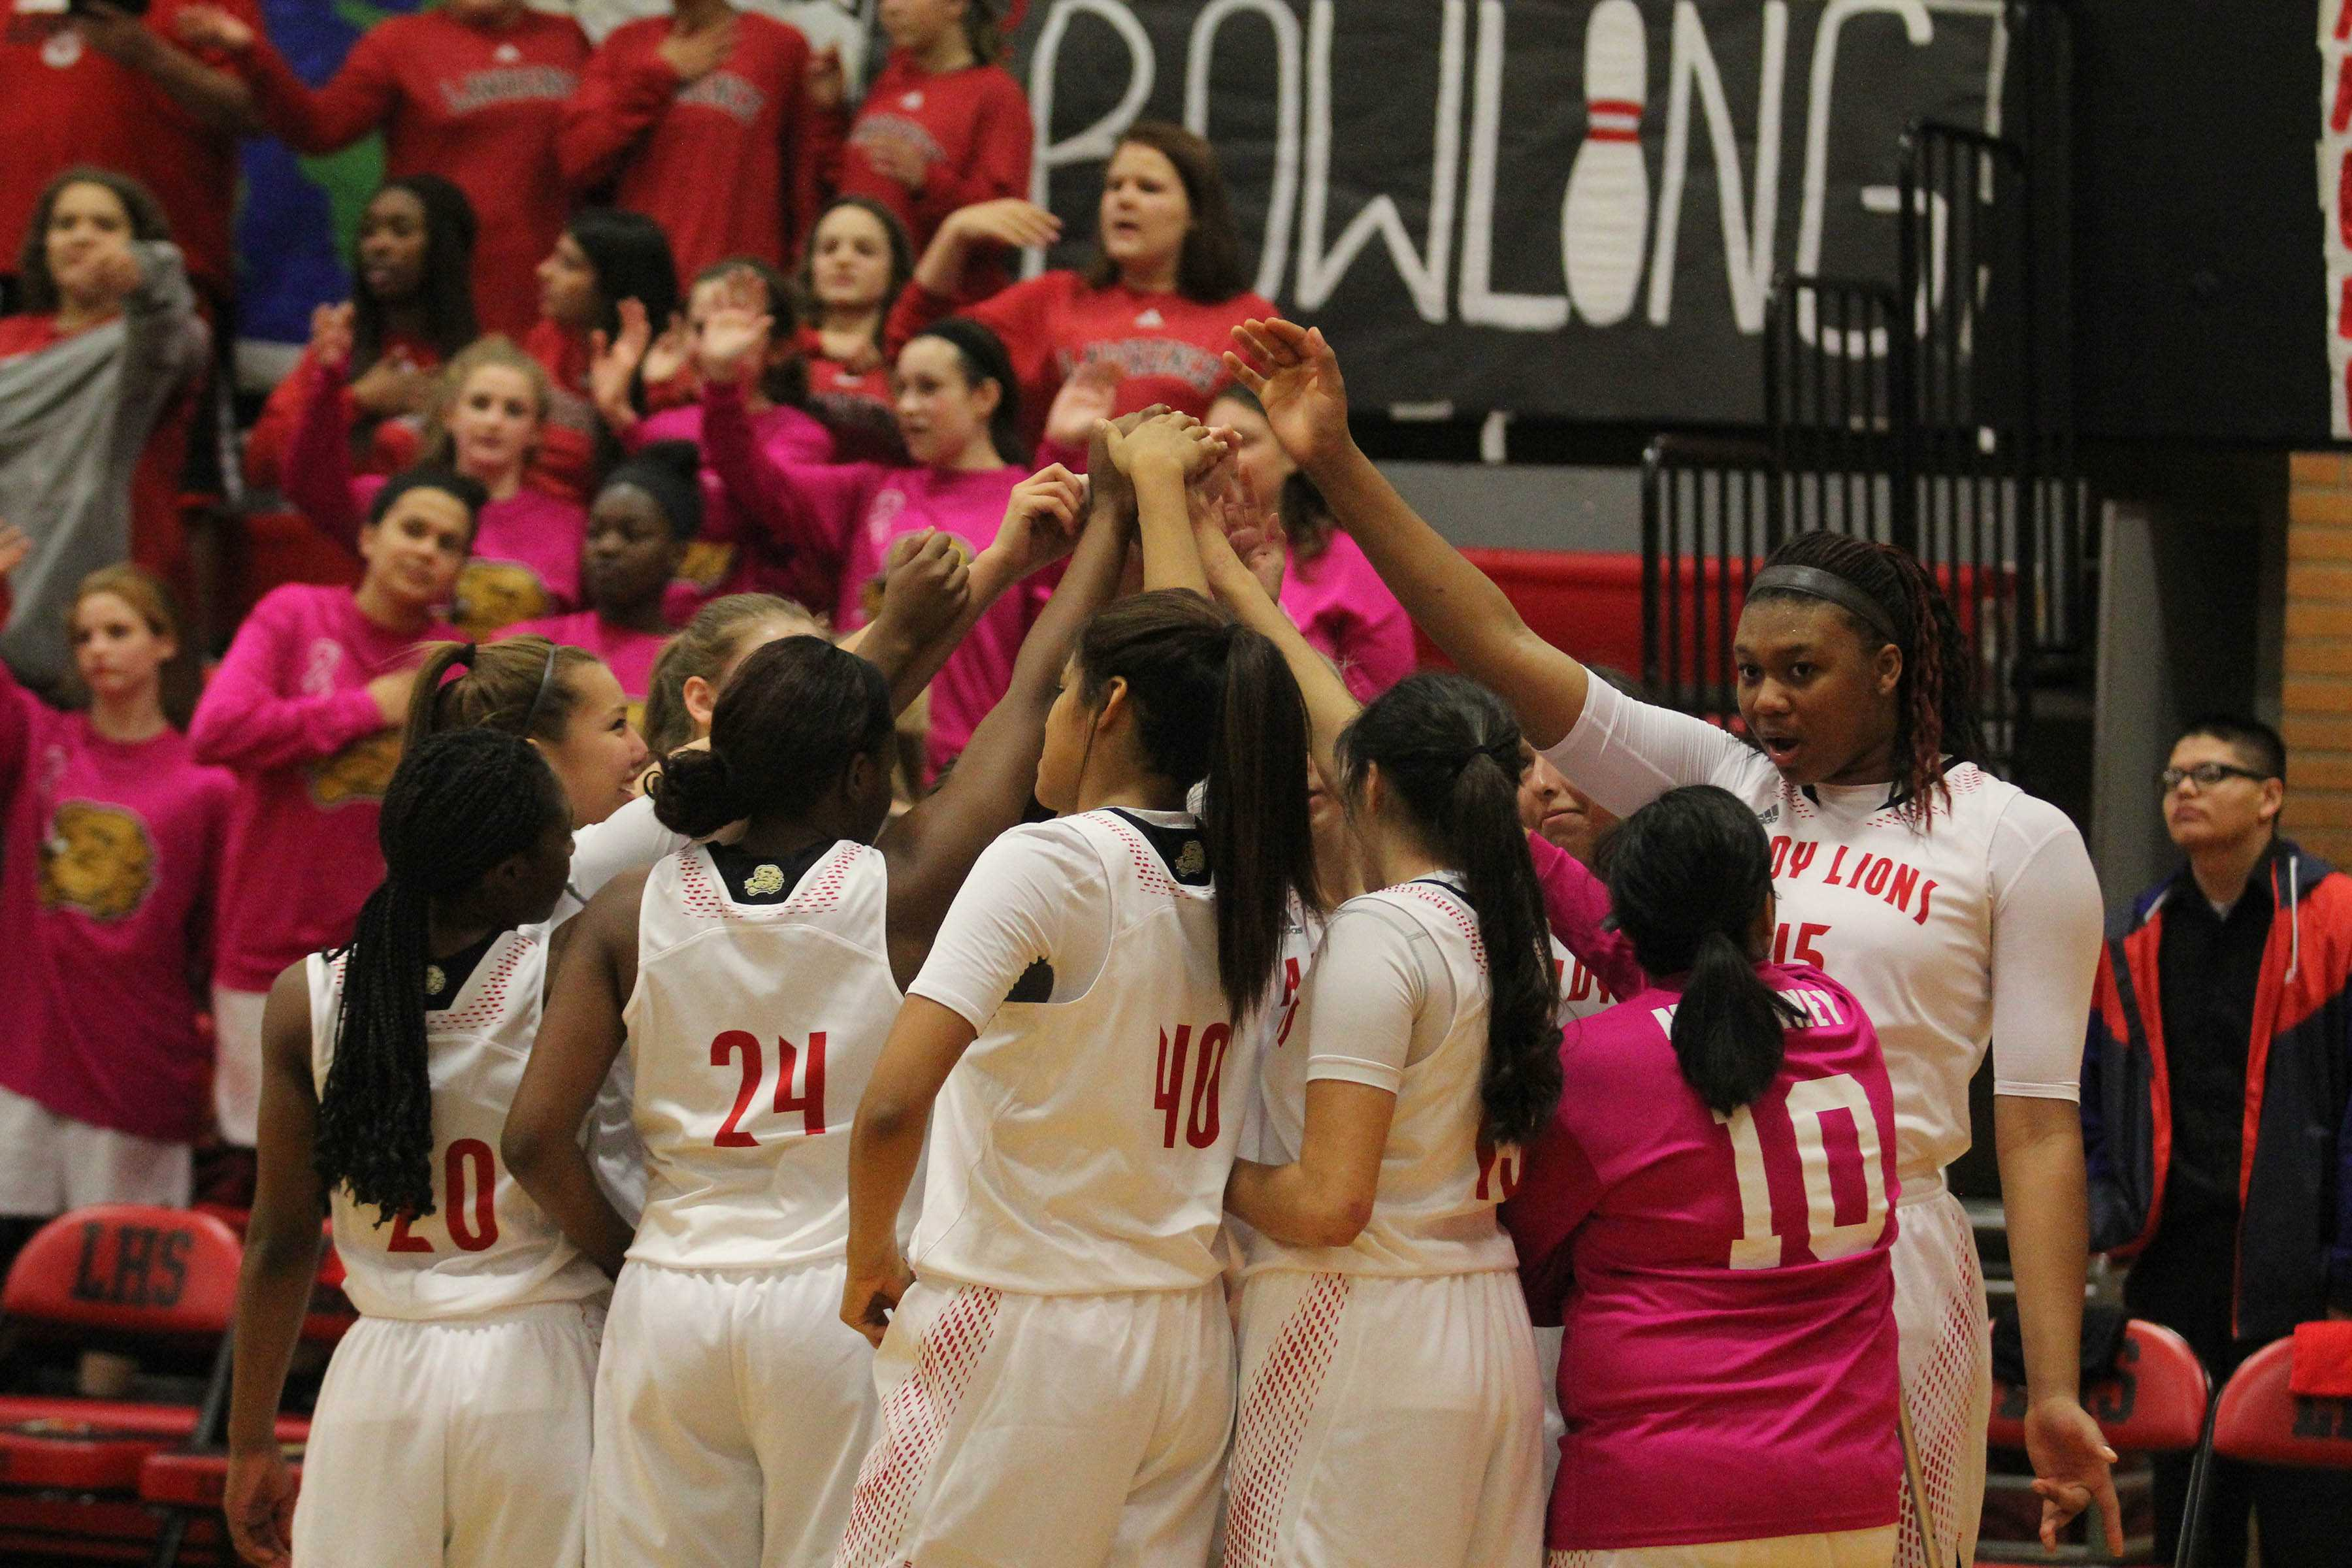 The Lady Lions will face Olathe South Thursday in the first round of the state tournament.